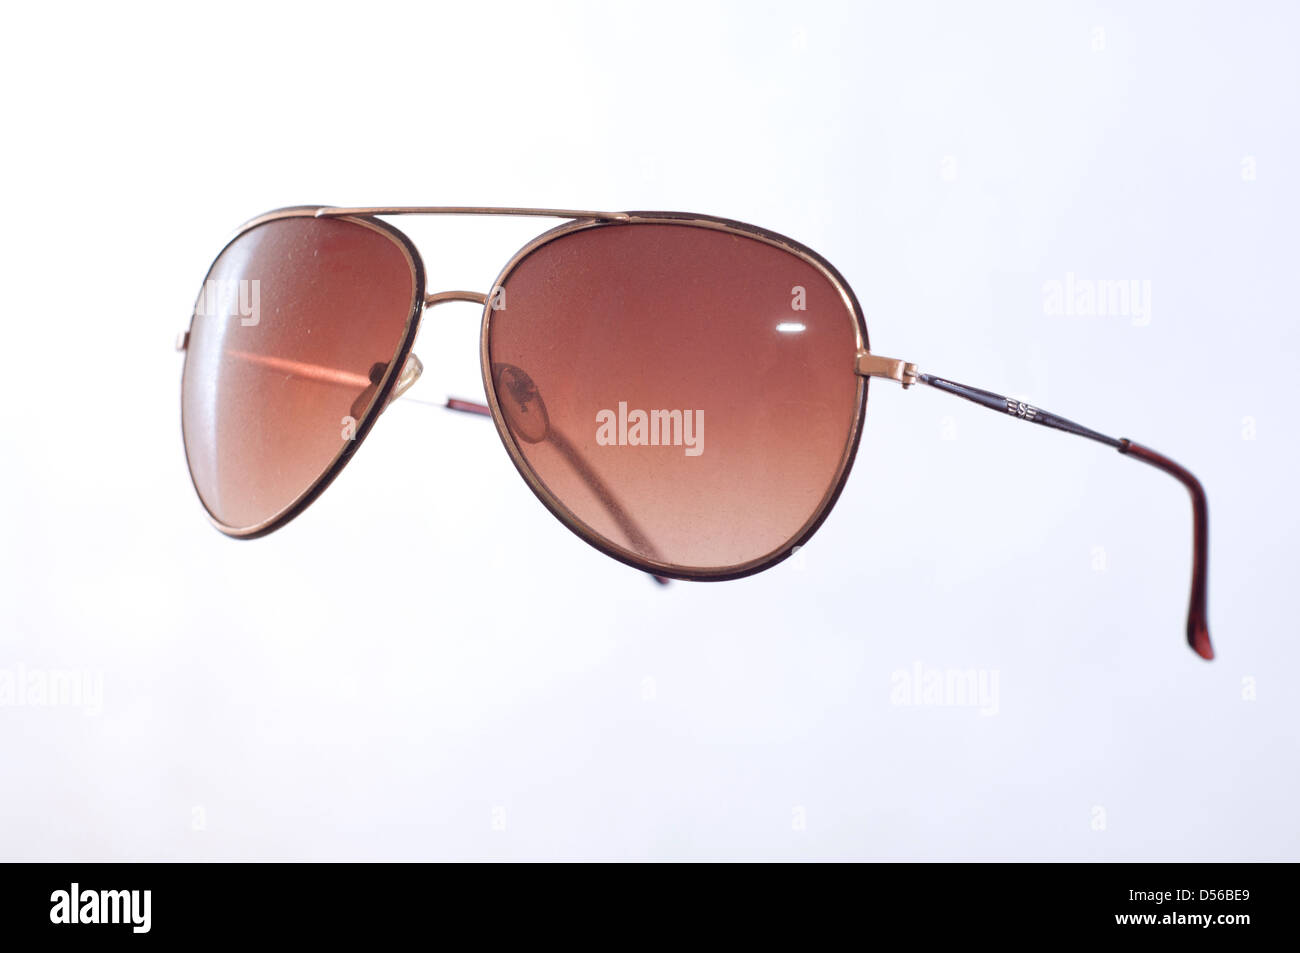 dusty lenses of brown glasses - Stock Image